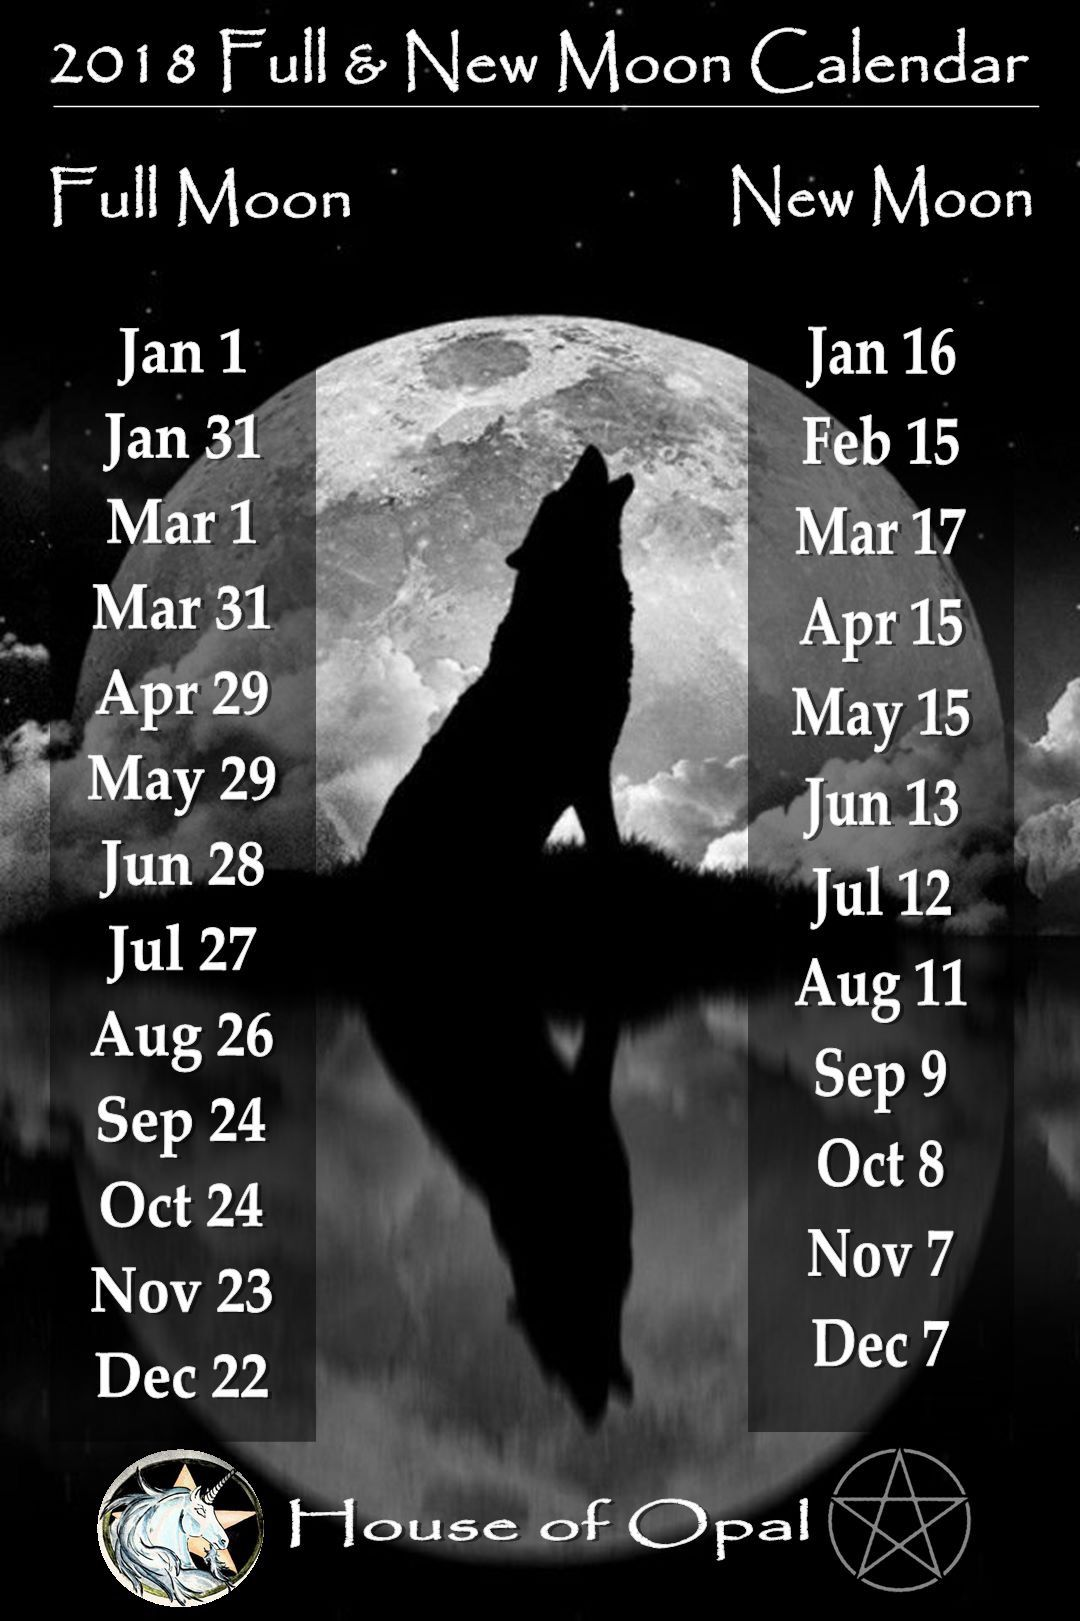 2018 Full & New Moon Calendar | Life Hacks | Pinterest | Moon